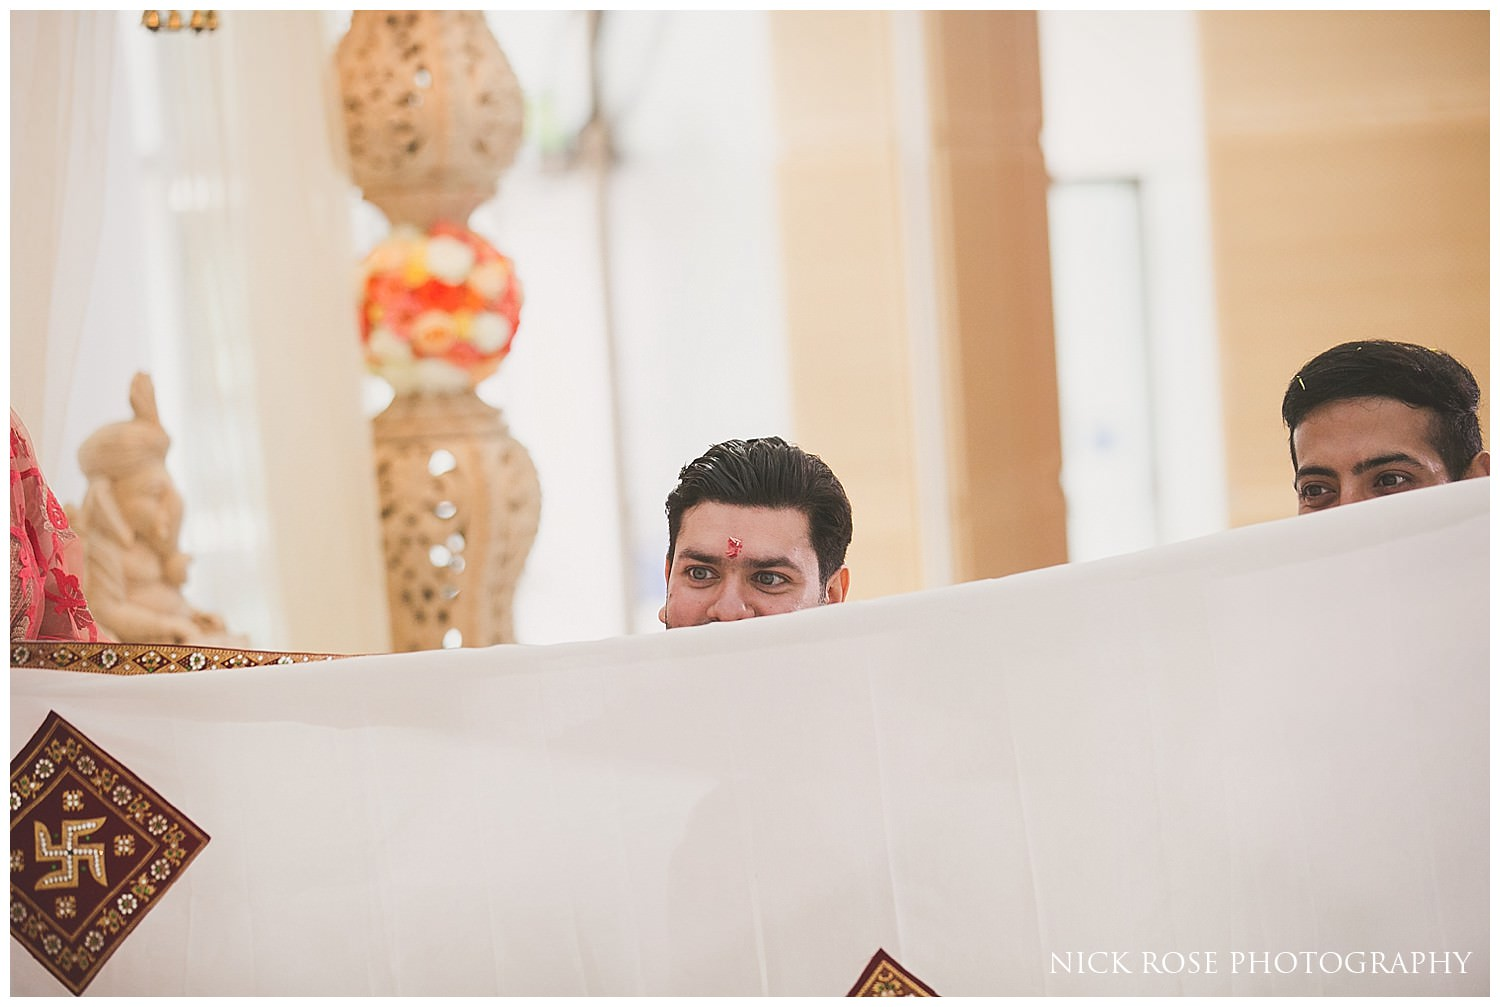 Groom seing his bride for the first time at an East Wintergarden Hindu wedding in Canary Wharf London